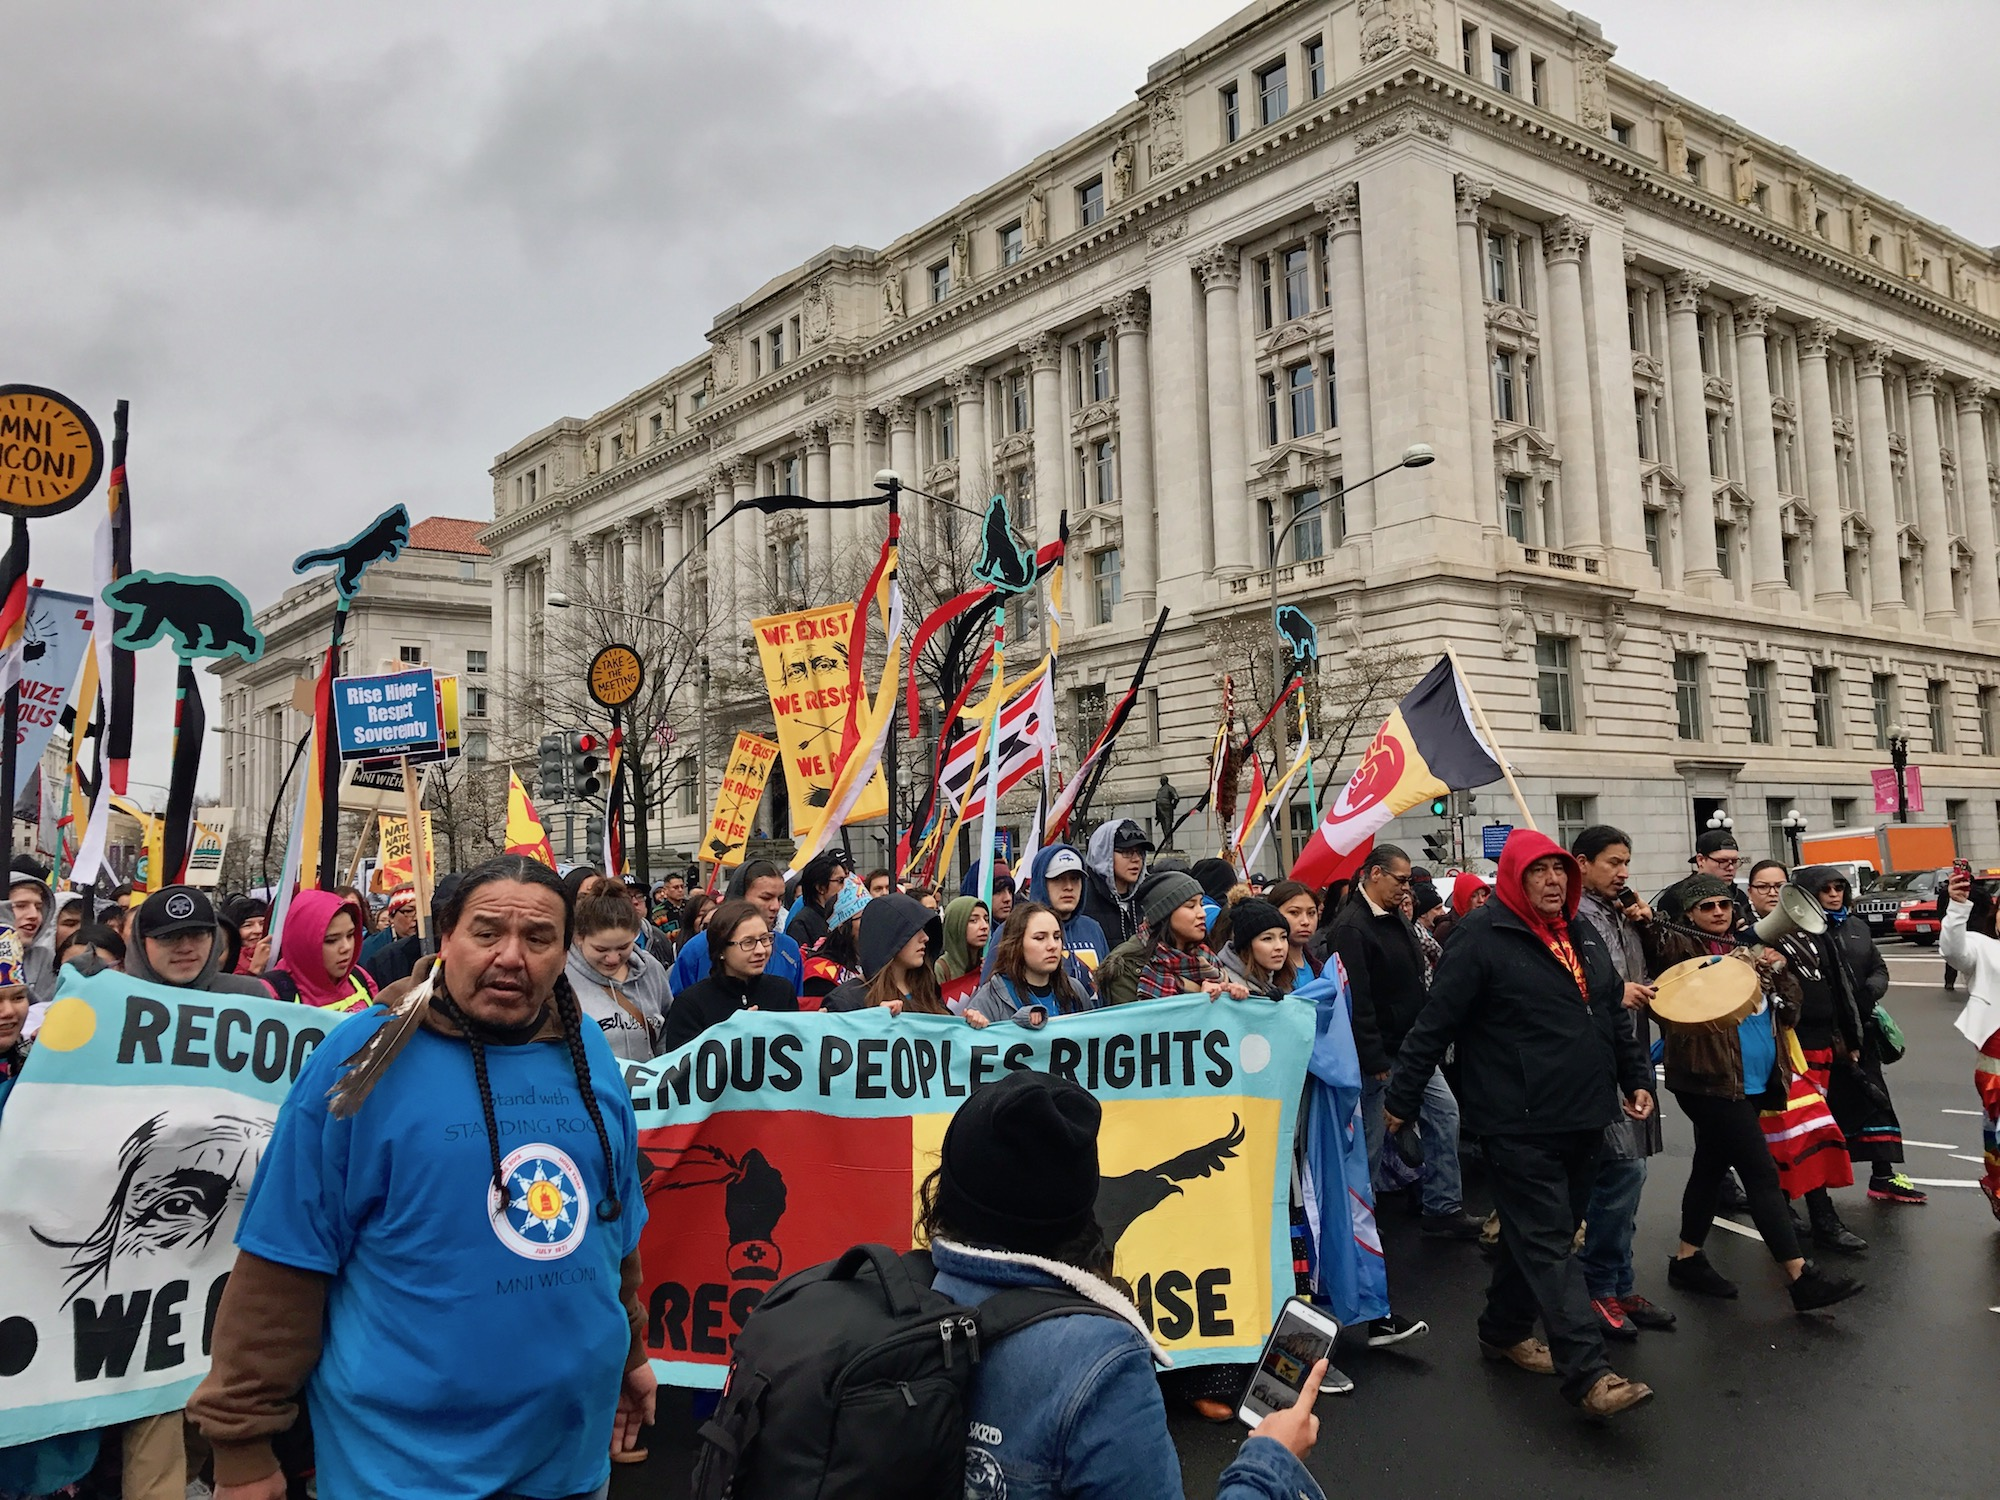 Native citizens rally in nation's capital to send message to Donald Trump